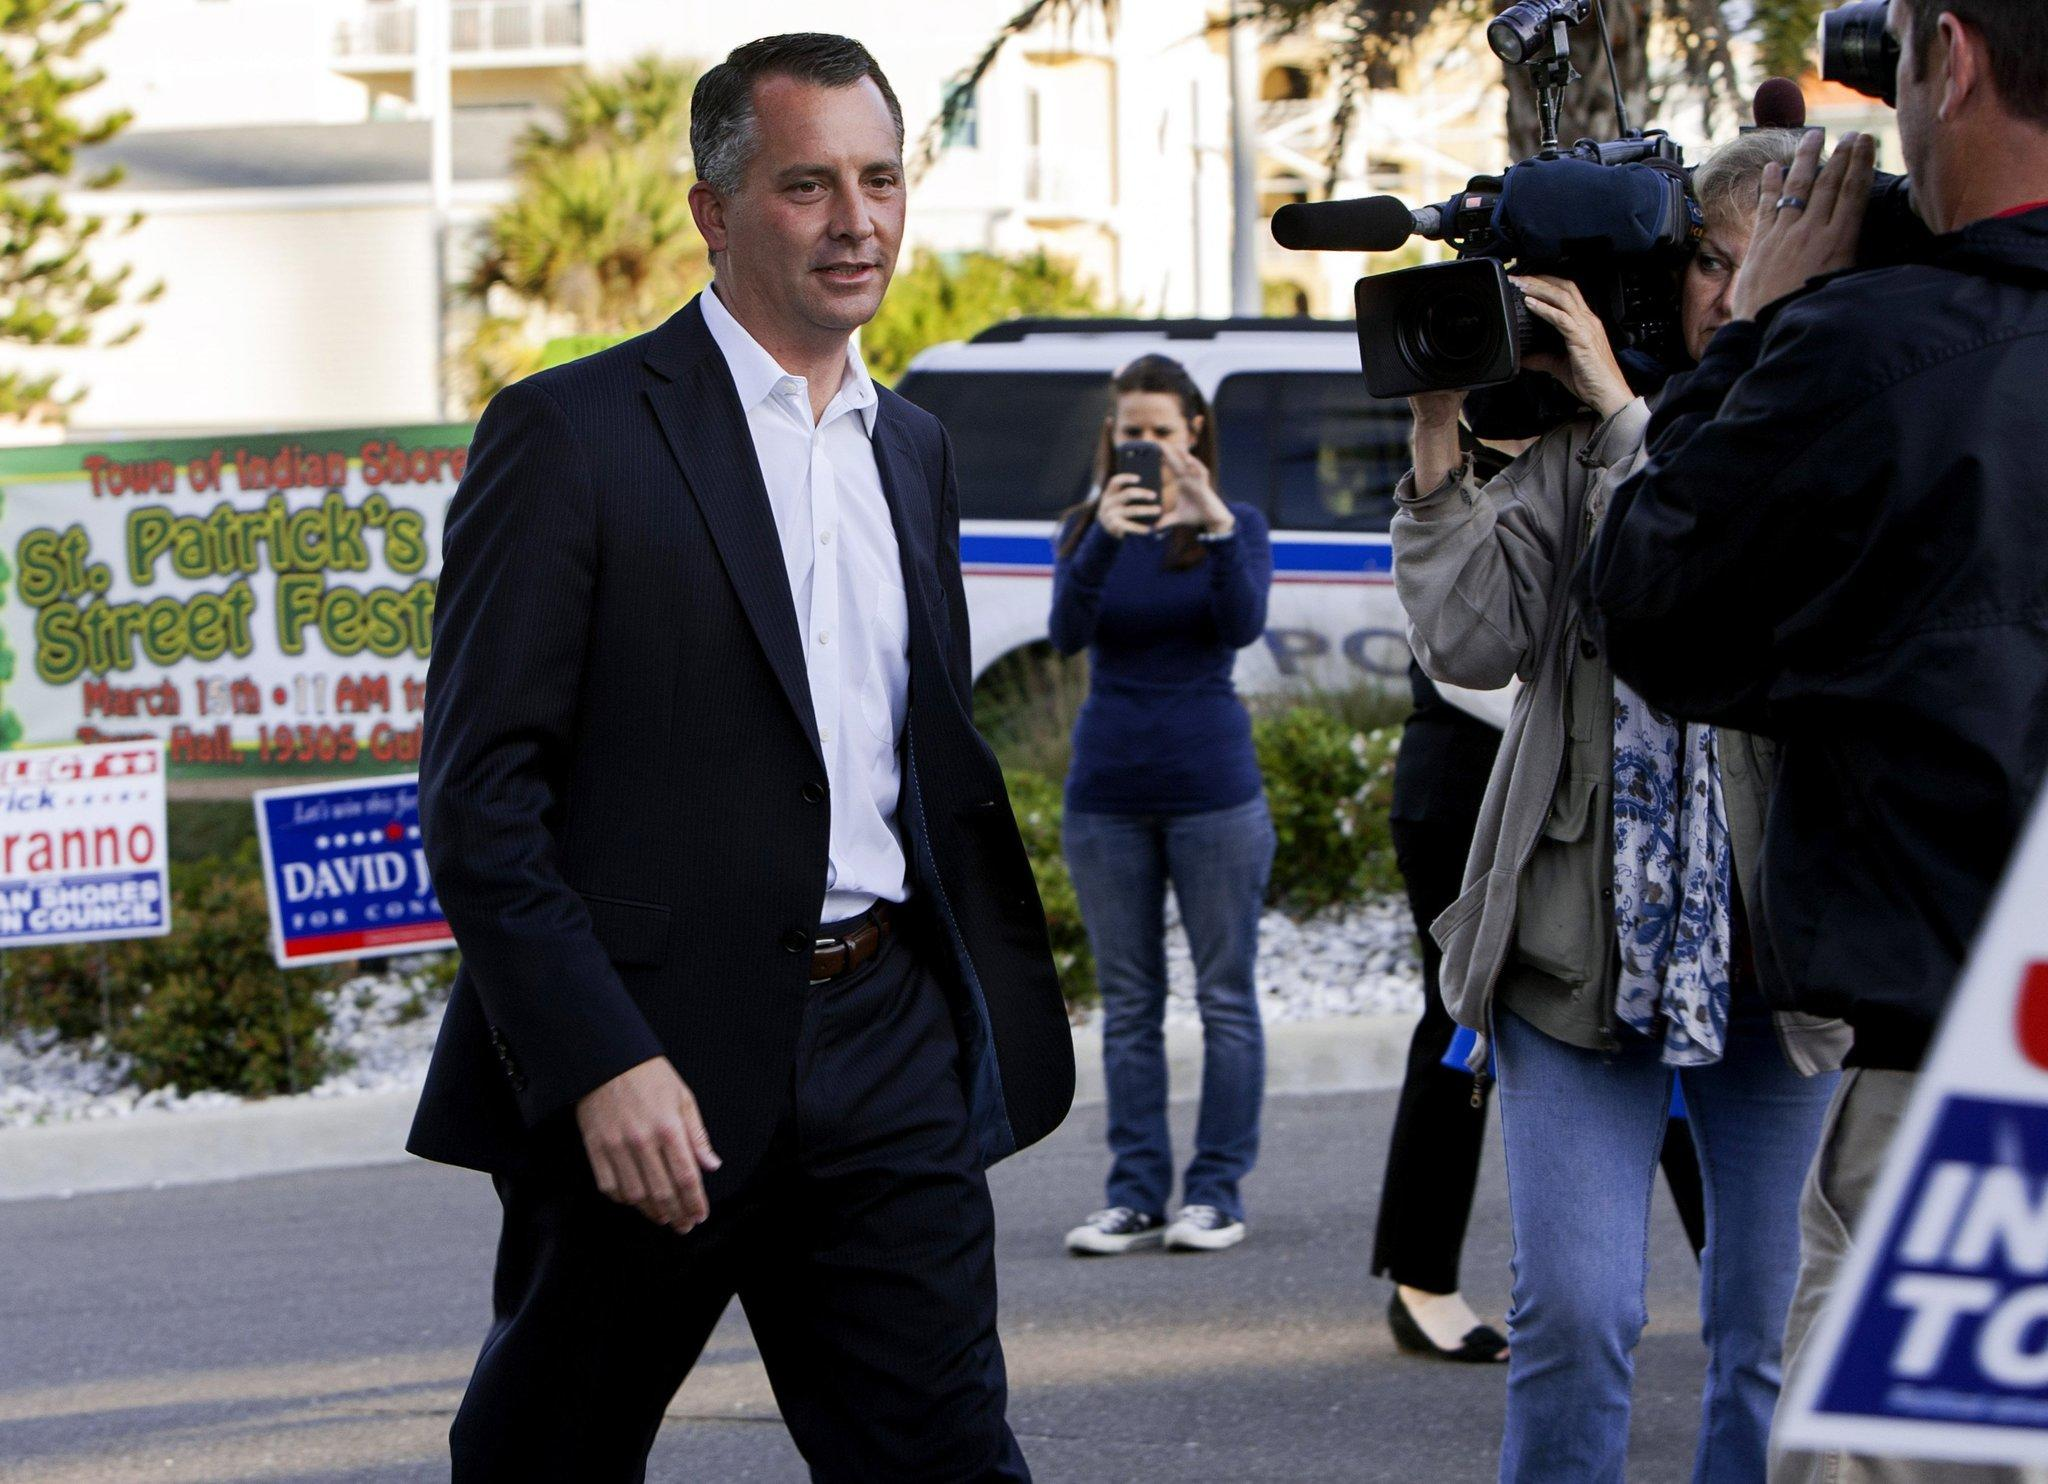 Republican candidate David Jolly arrives at the Indian Shores Town Hall in Indian Shores, Fla., to place his vote in the special election for Florida 13th Congressional District, Tuesday, March 11, 2014.